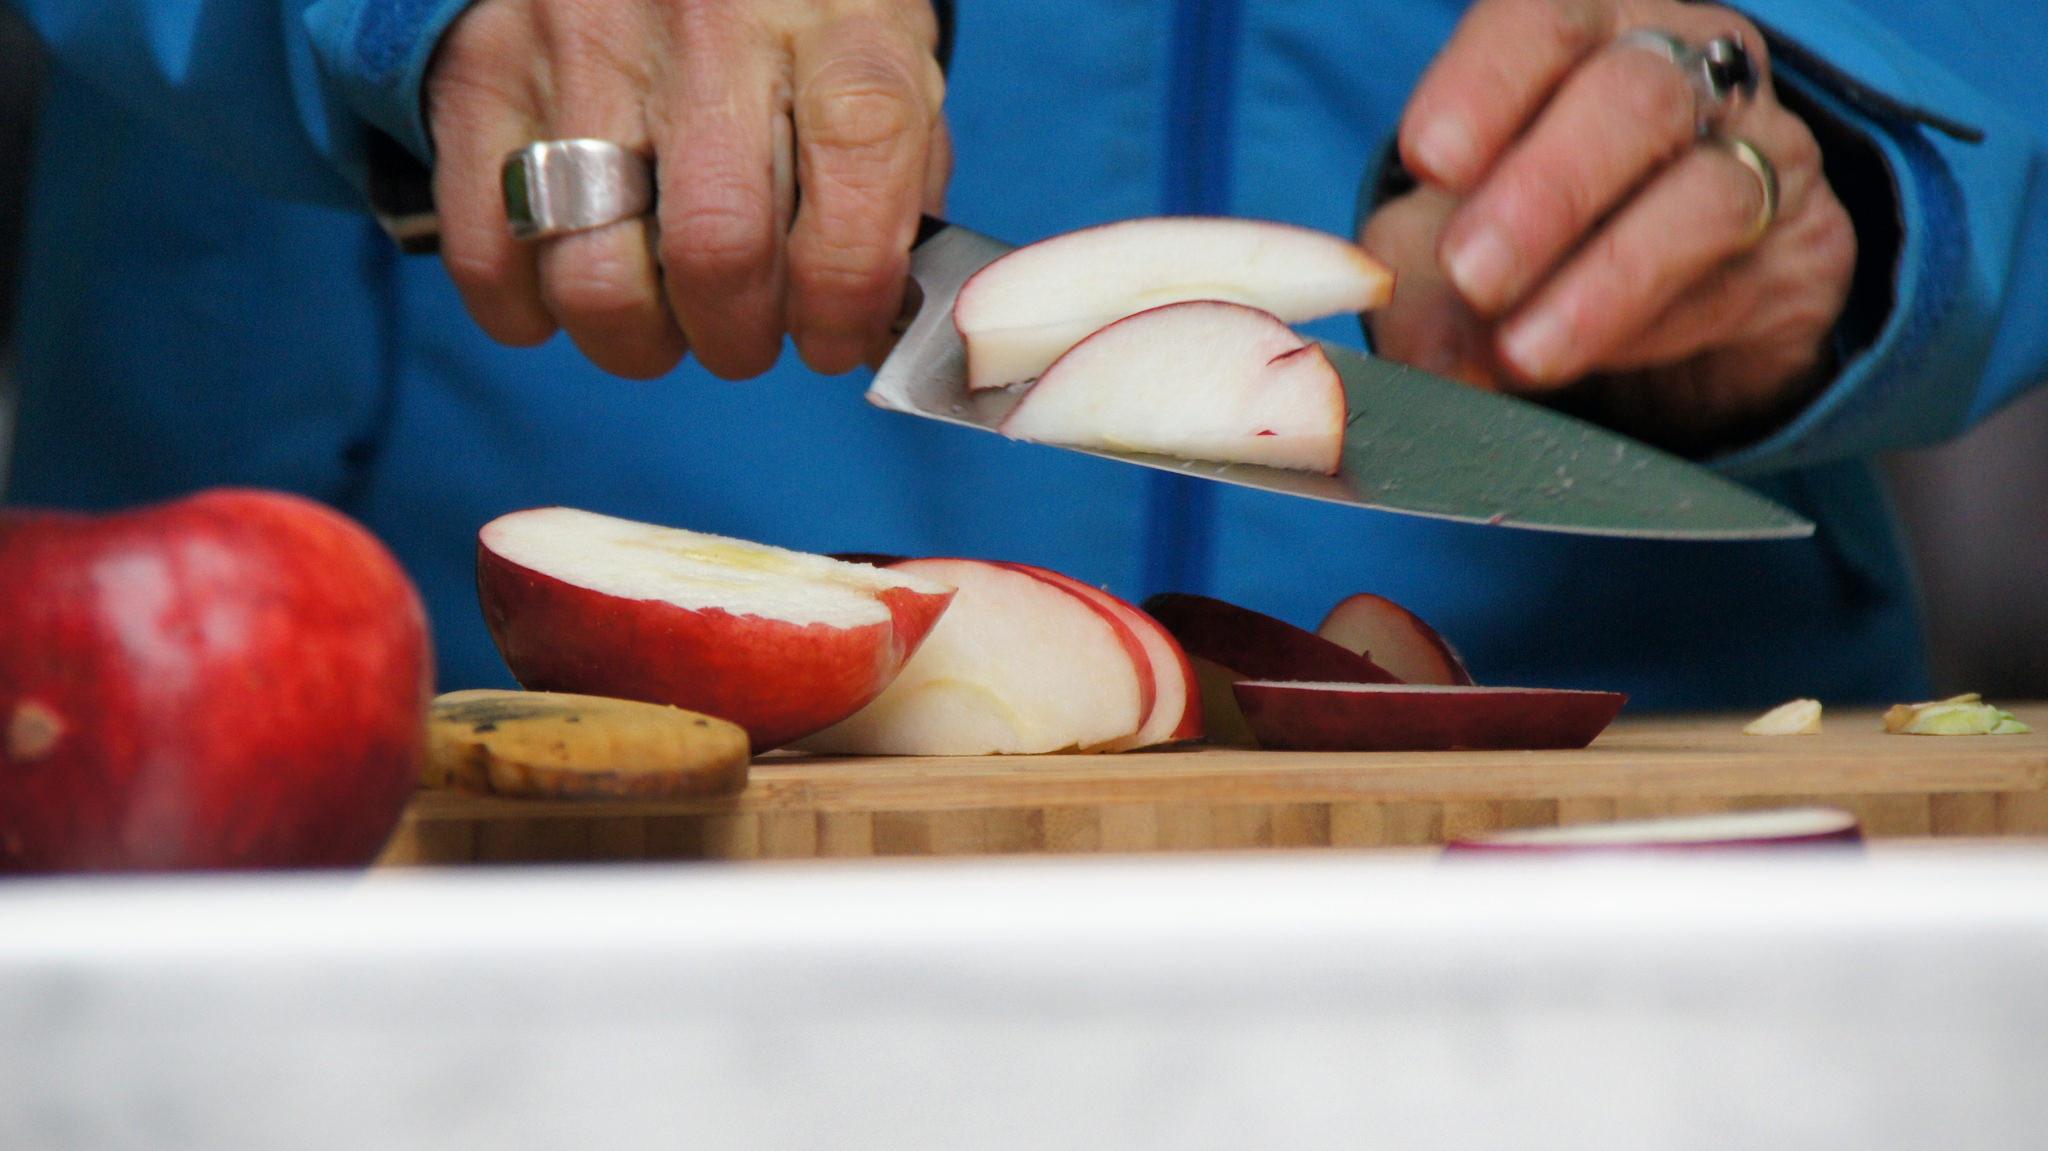 slicing apples